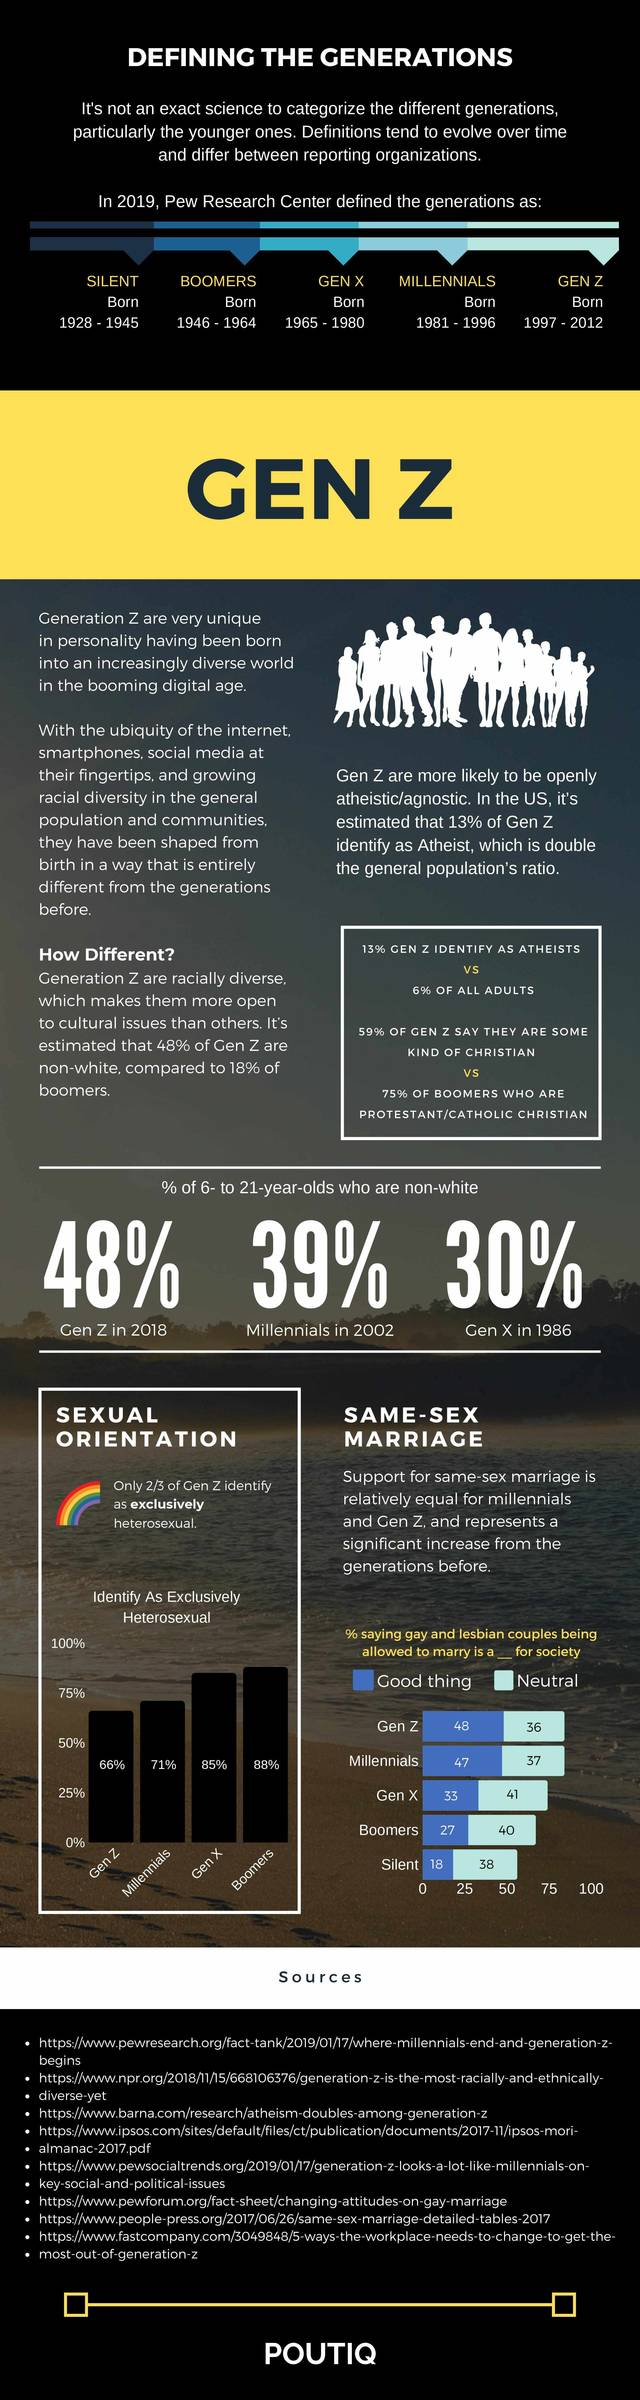 Gen z social issues what do generation z care about and how do you compare